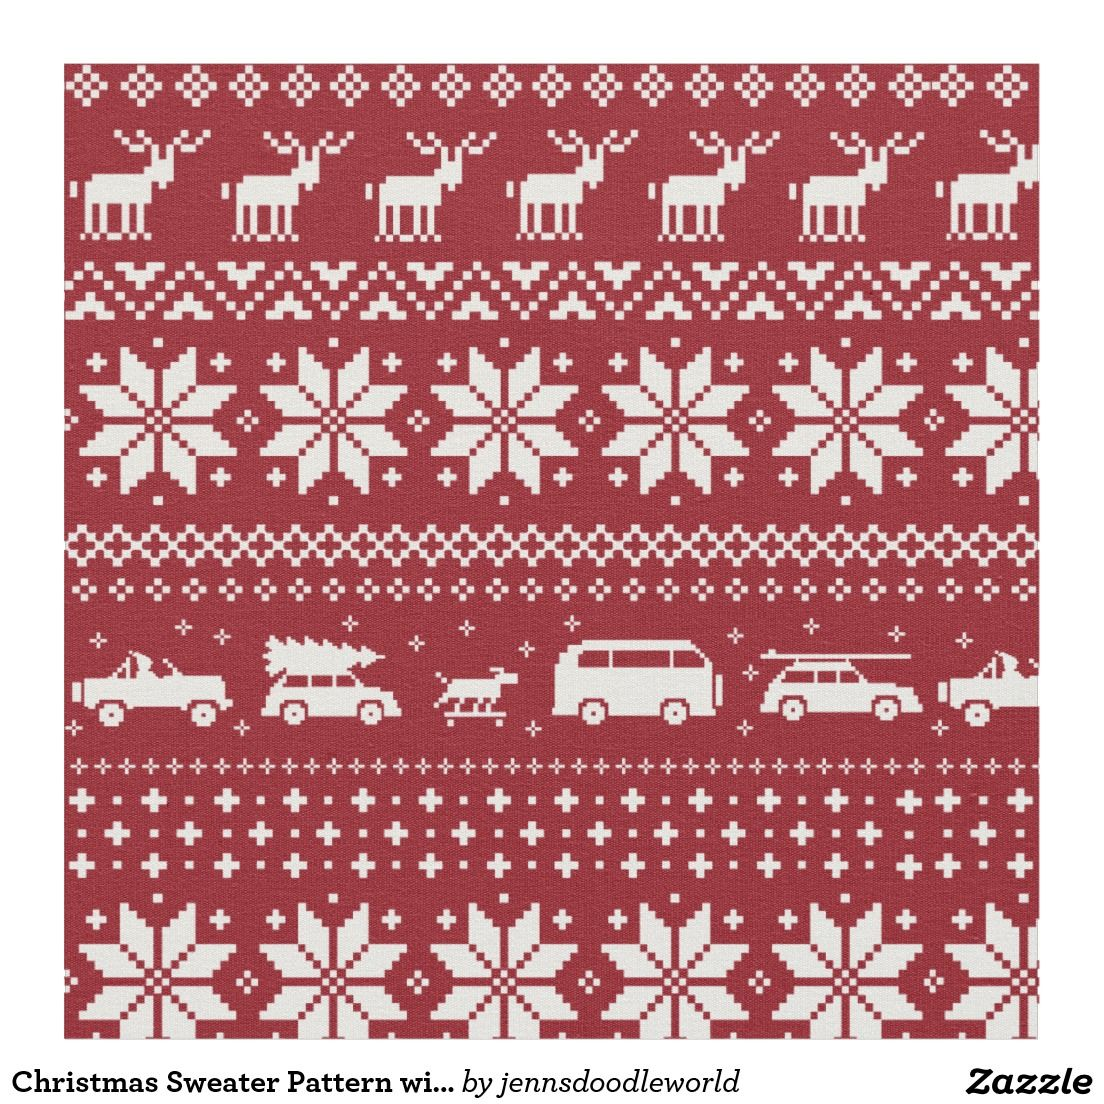 Christmas Sweater Pattern With Reindeer And Cars Fabric Christmas Sweaters Car Fabric Sweater Pattern